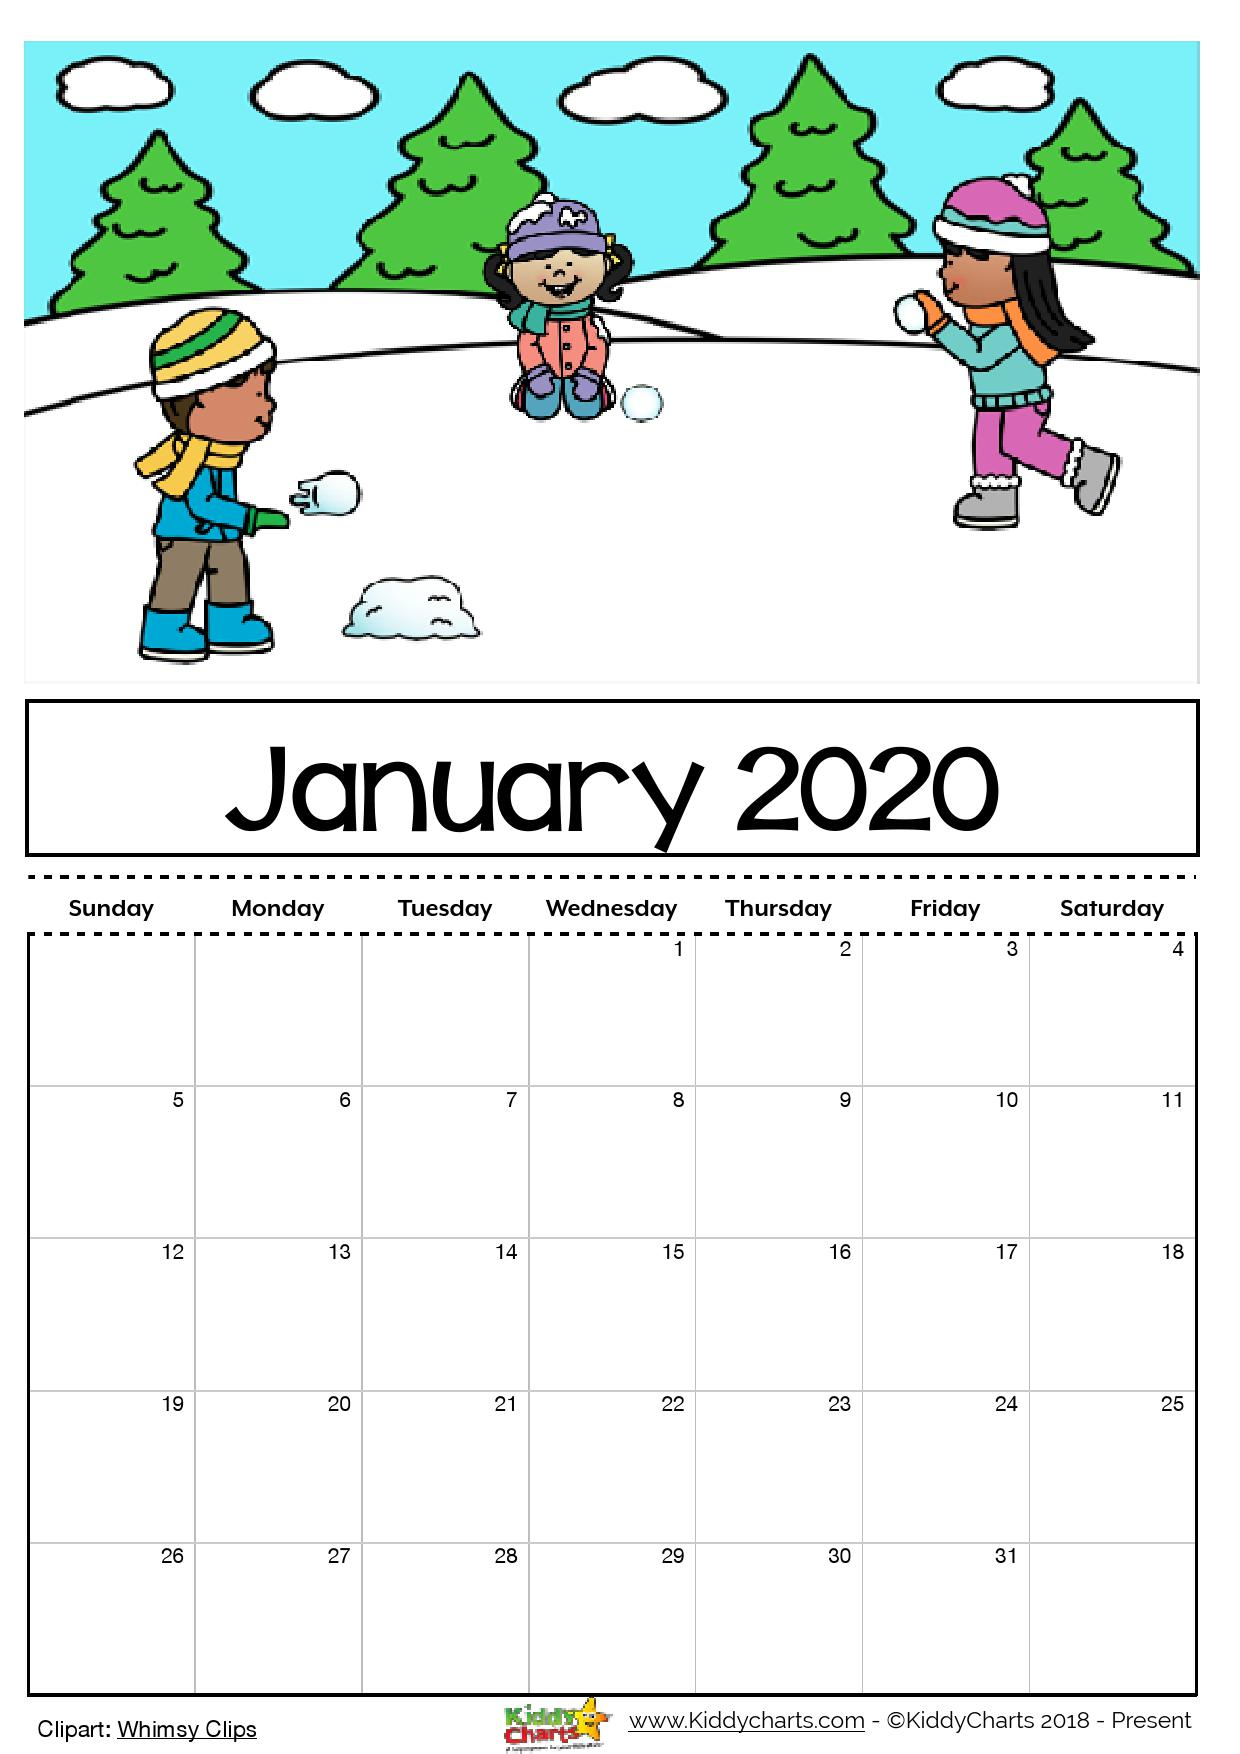 January 2020 Calendar For Kids - Togo.wpart.co